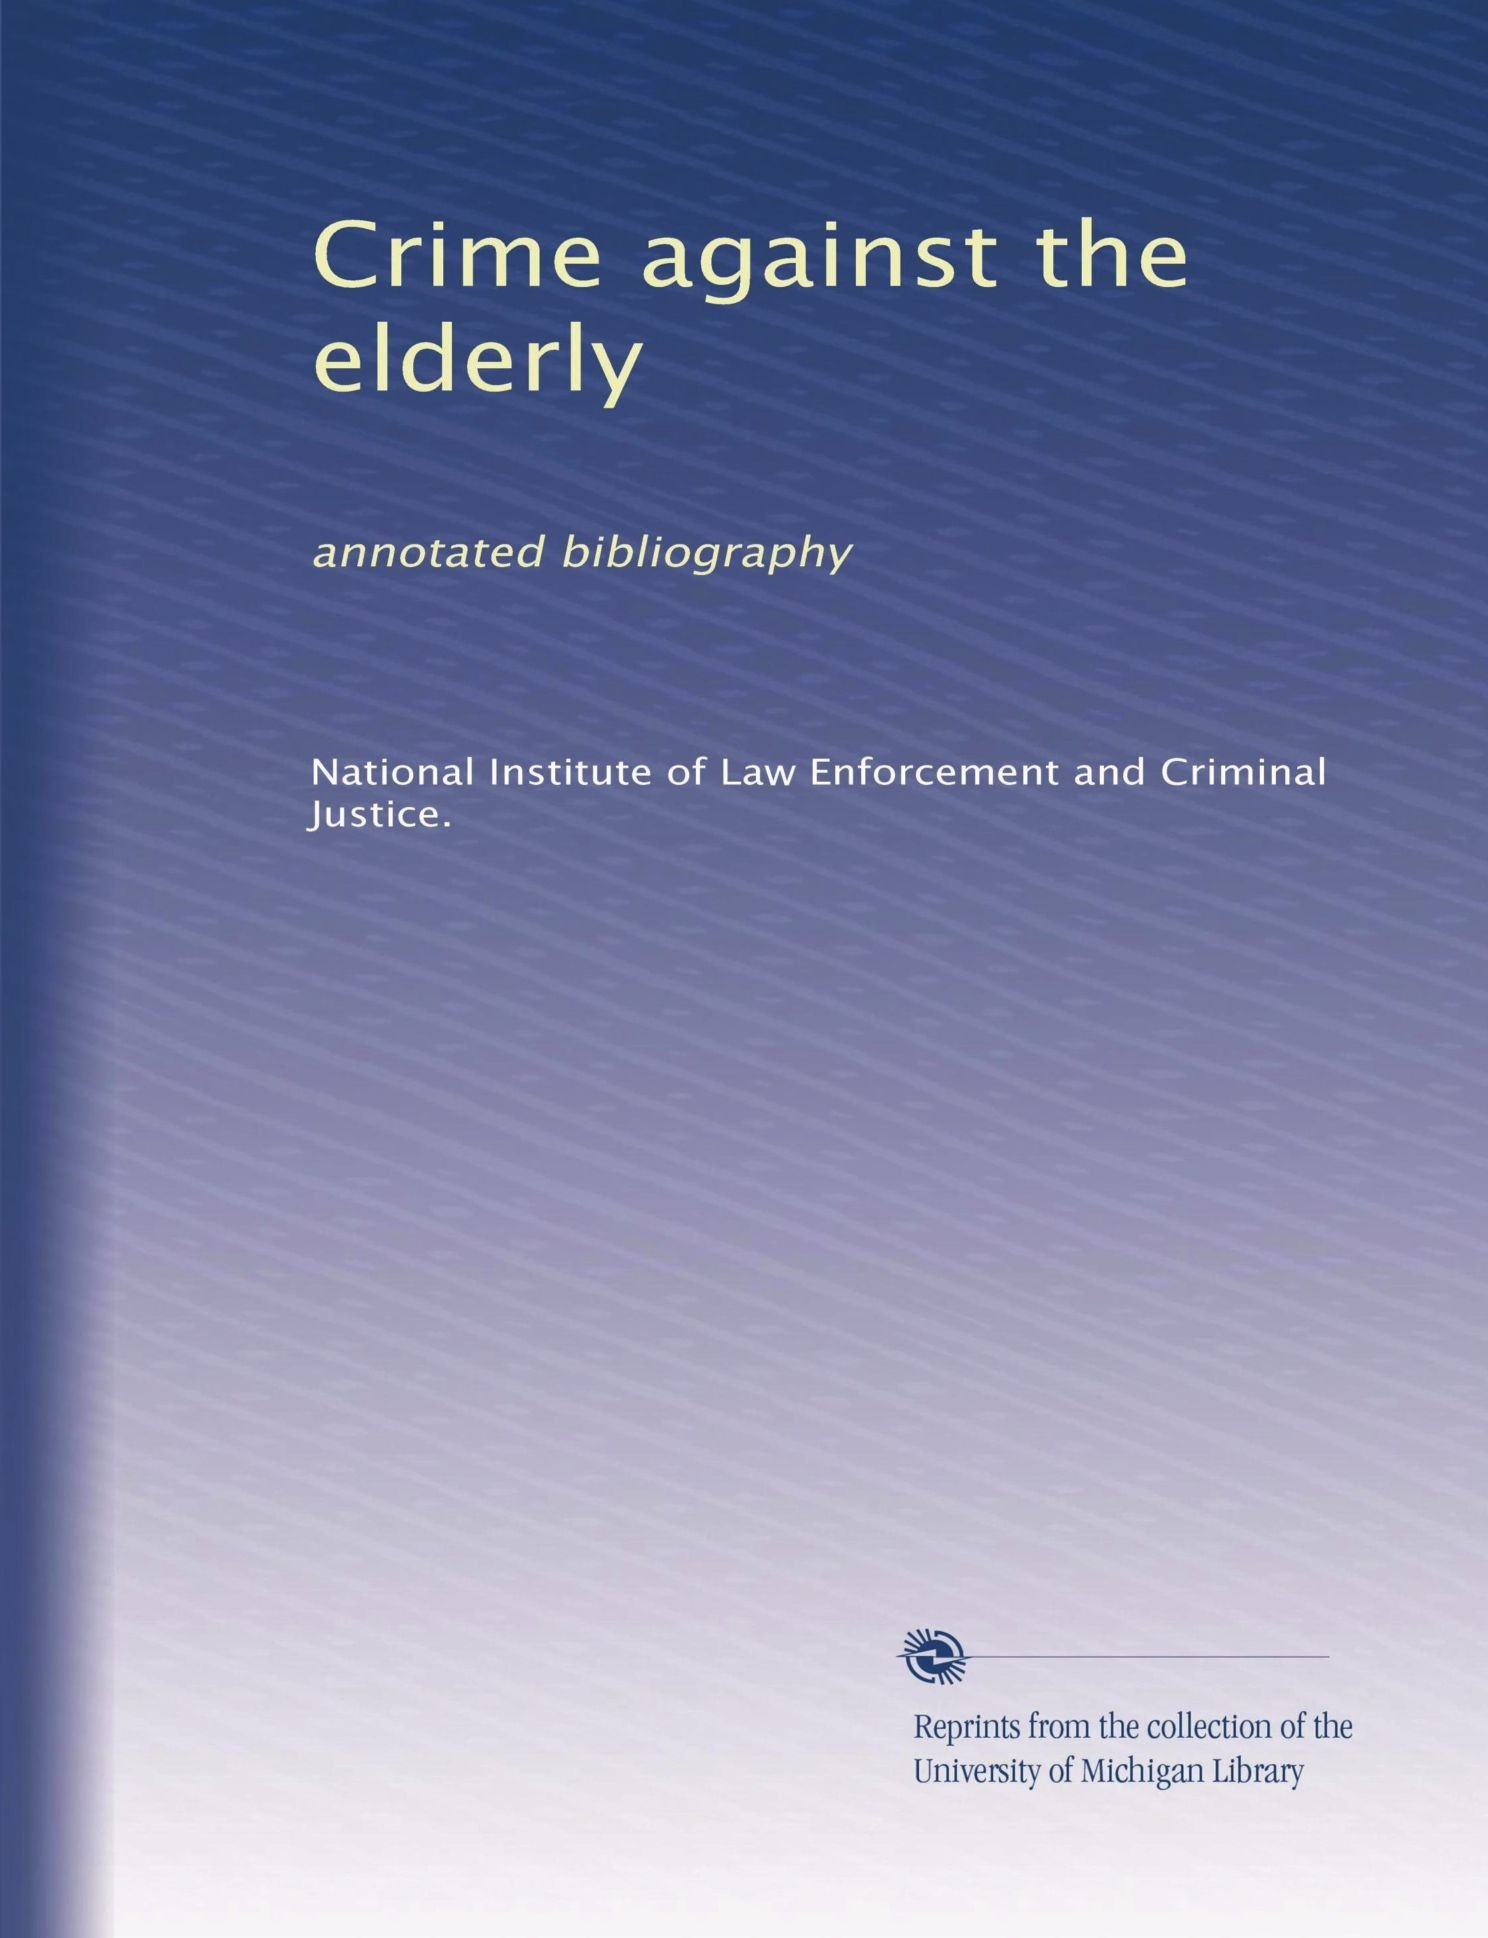 order criminal law annotated bibliography